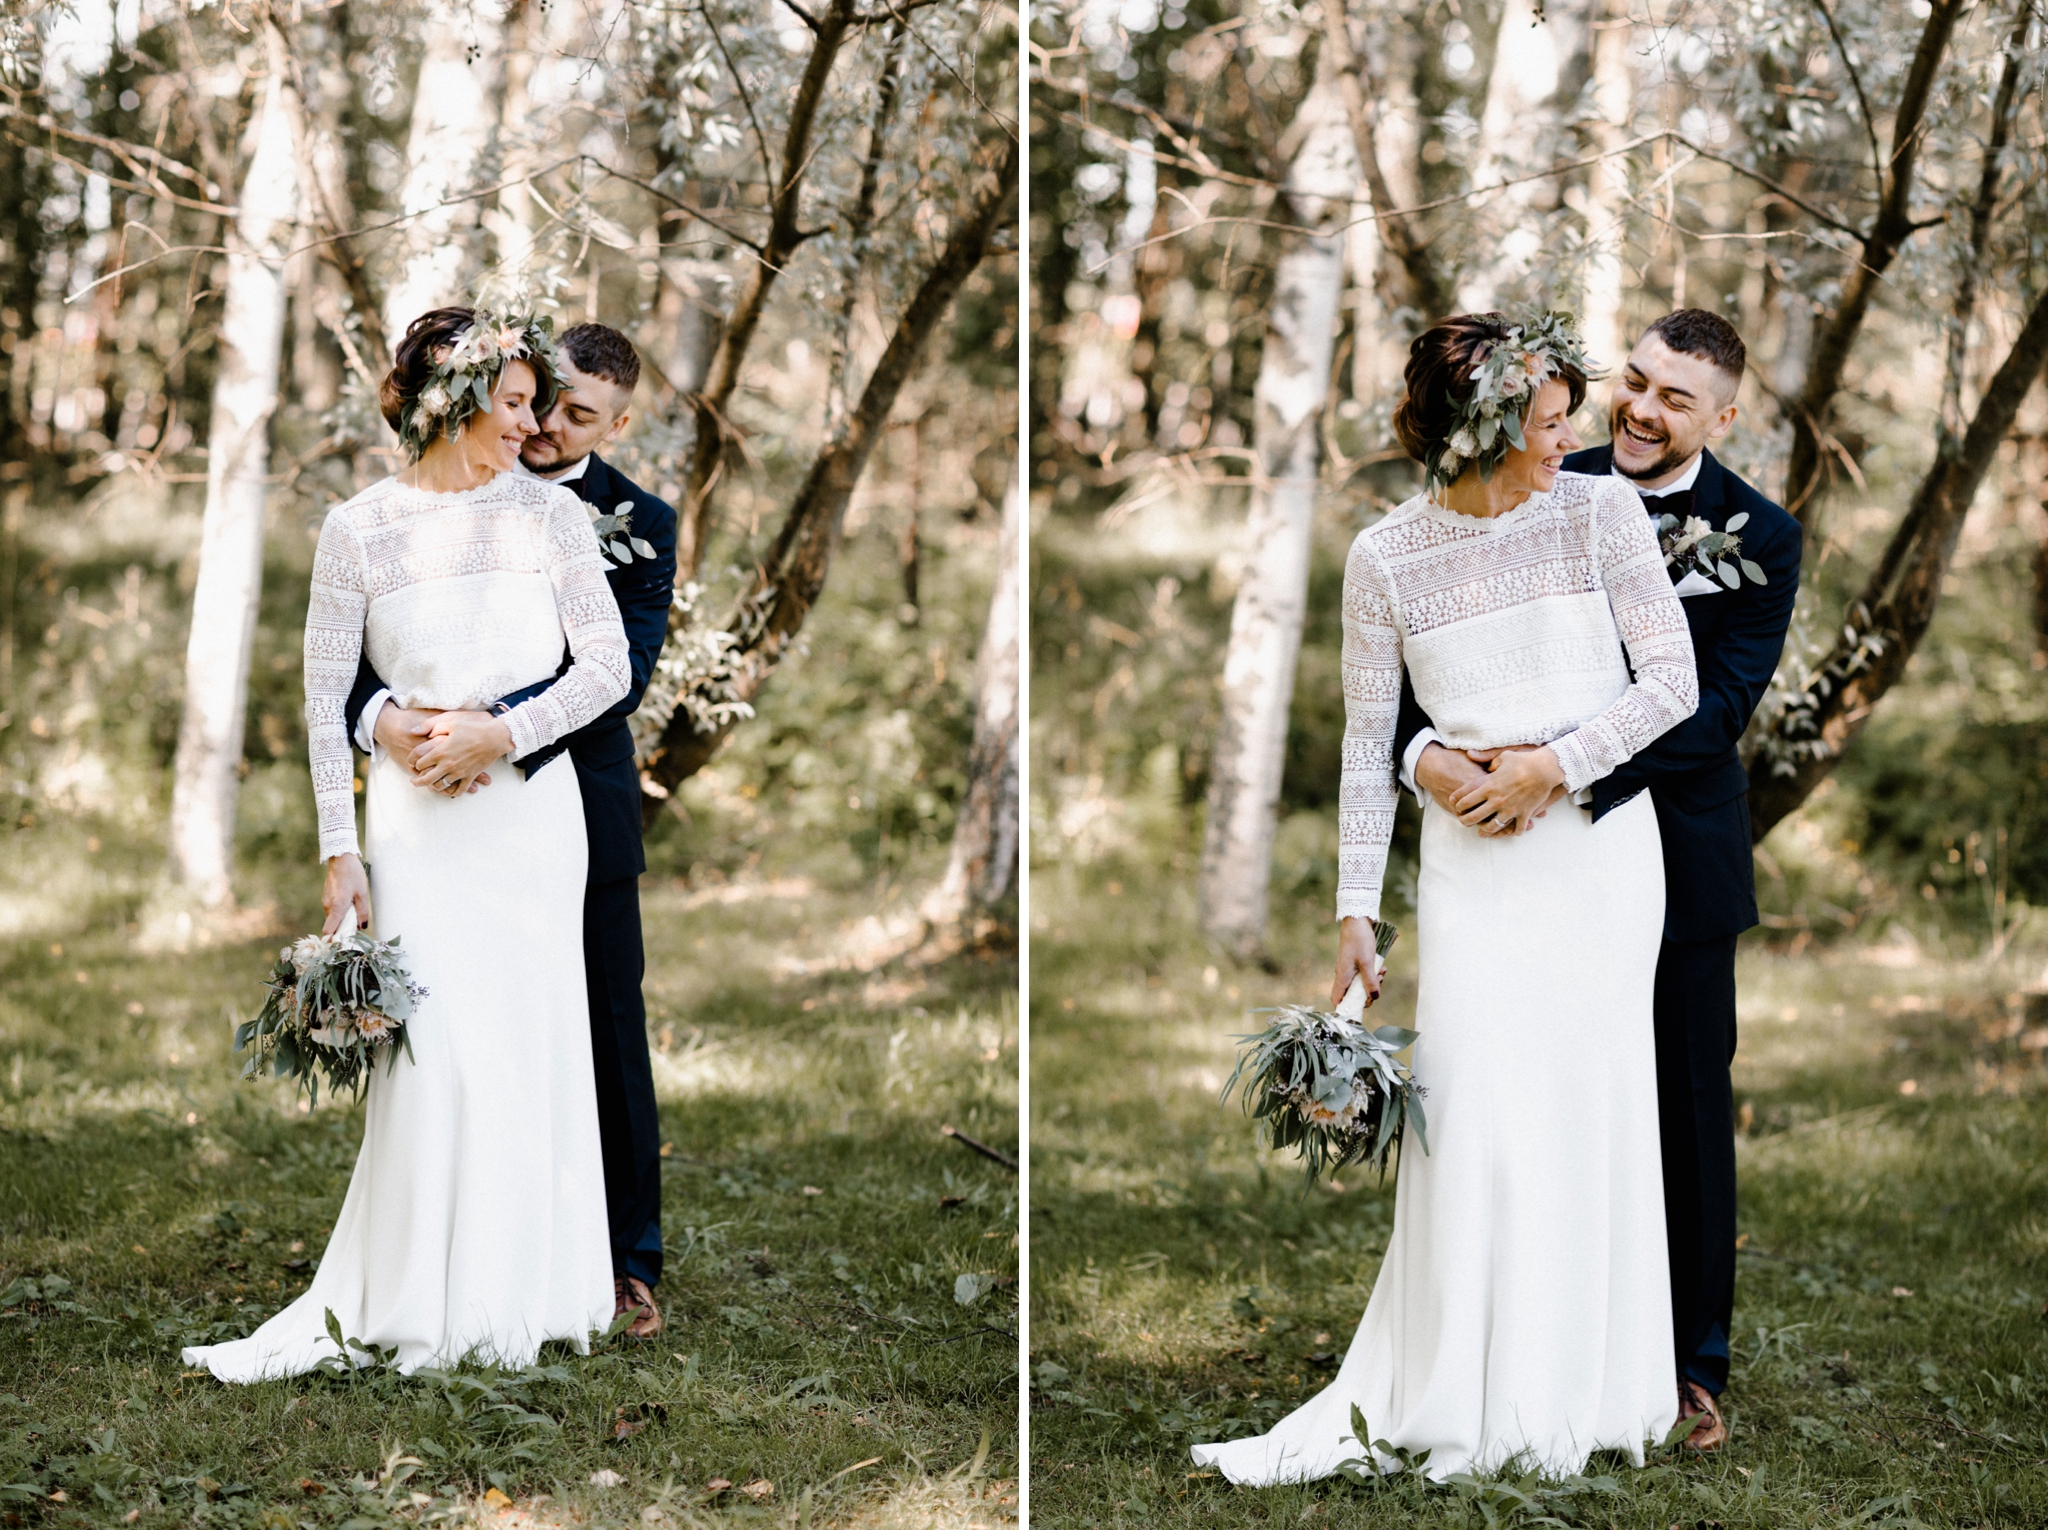 Julien + Johanna | Villa Ivan Falin | by Patrick Karkkolainen Wedding Photography-102.jpg